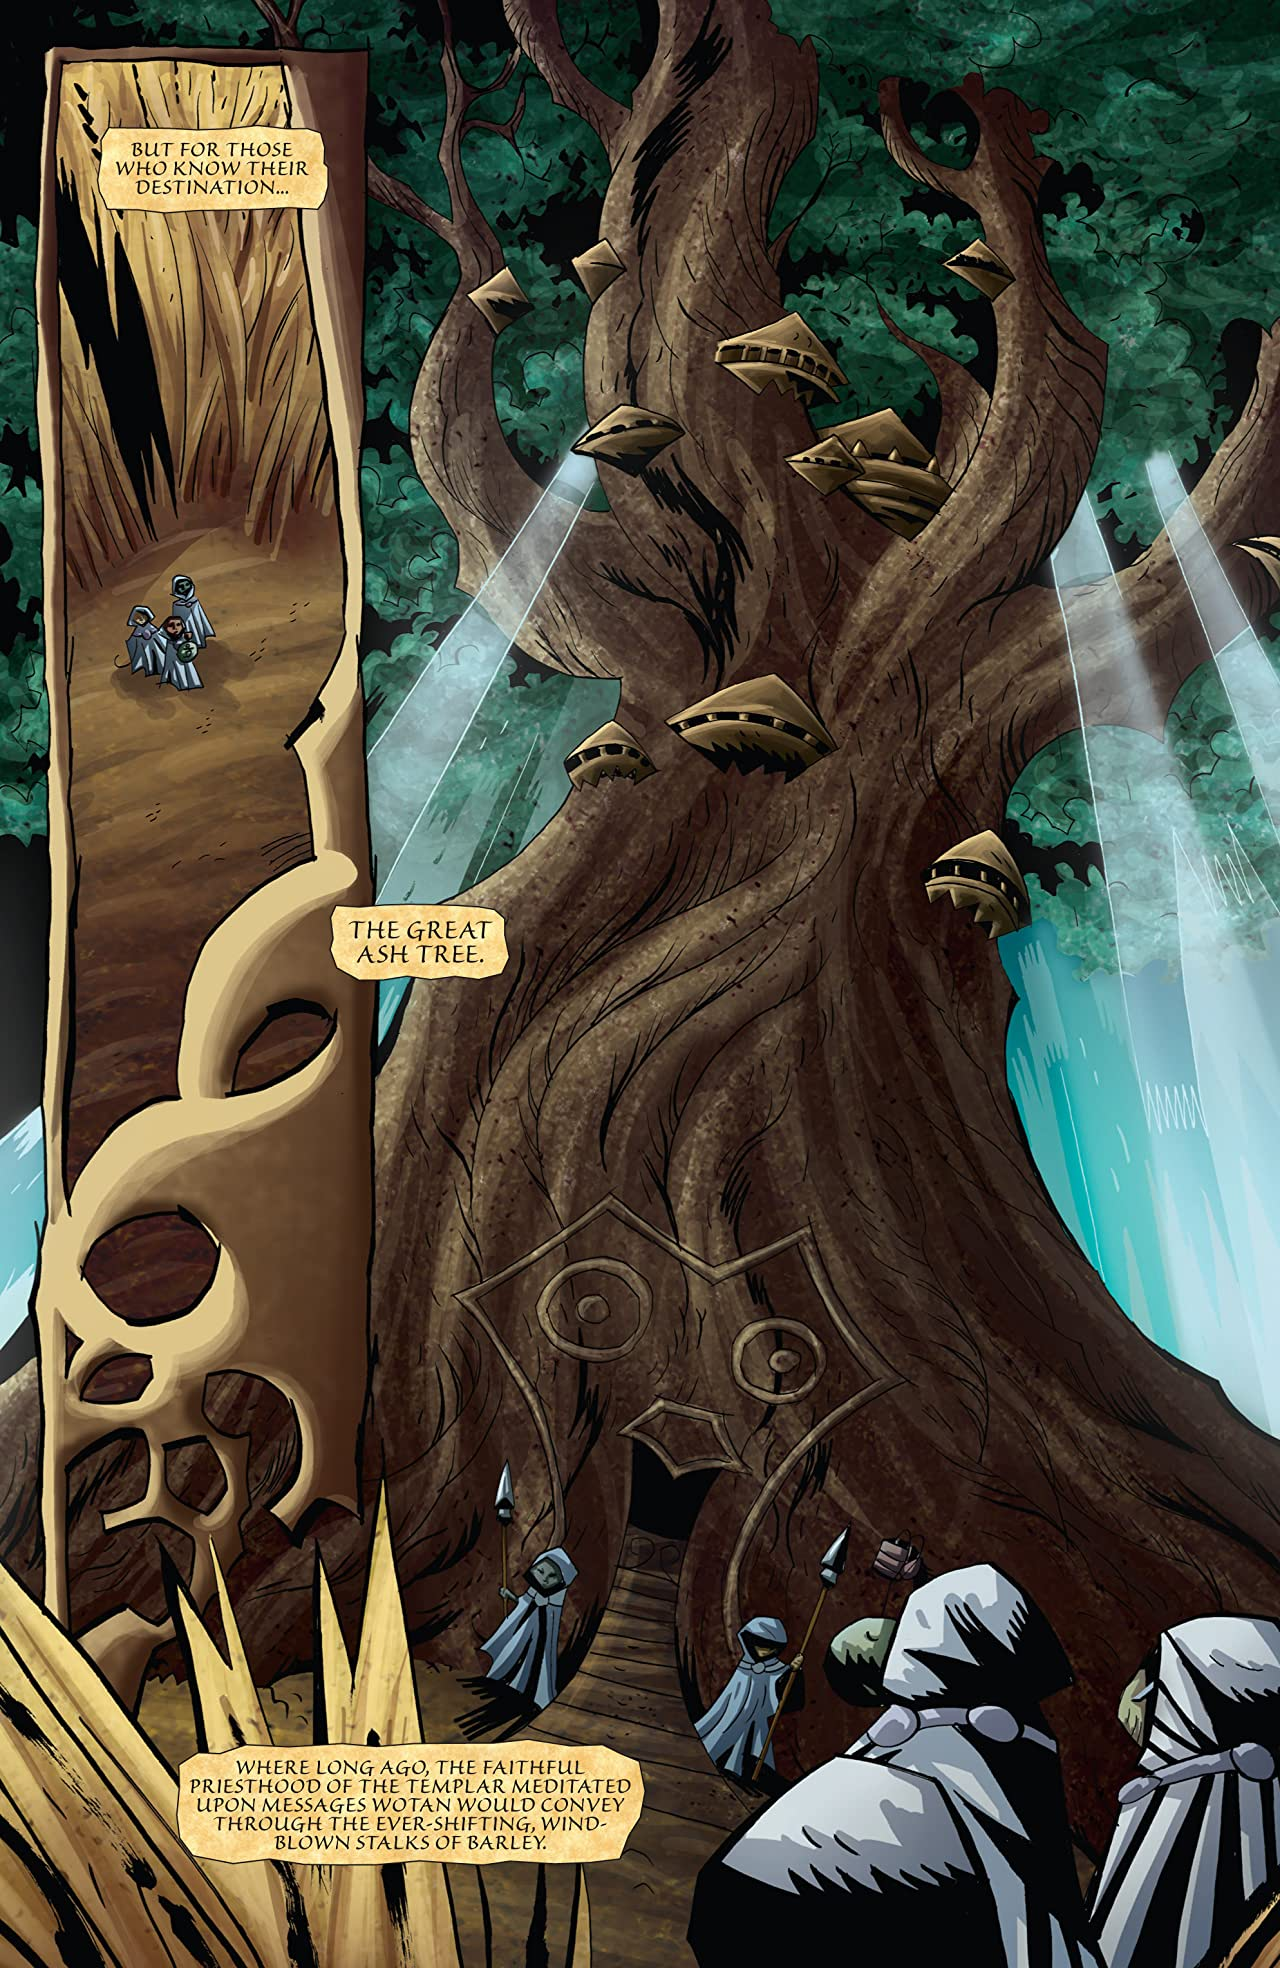 The Mice Templar Vol. 4: Legend #5